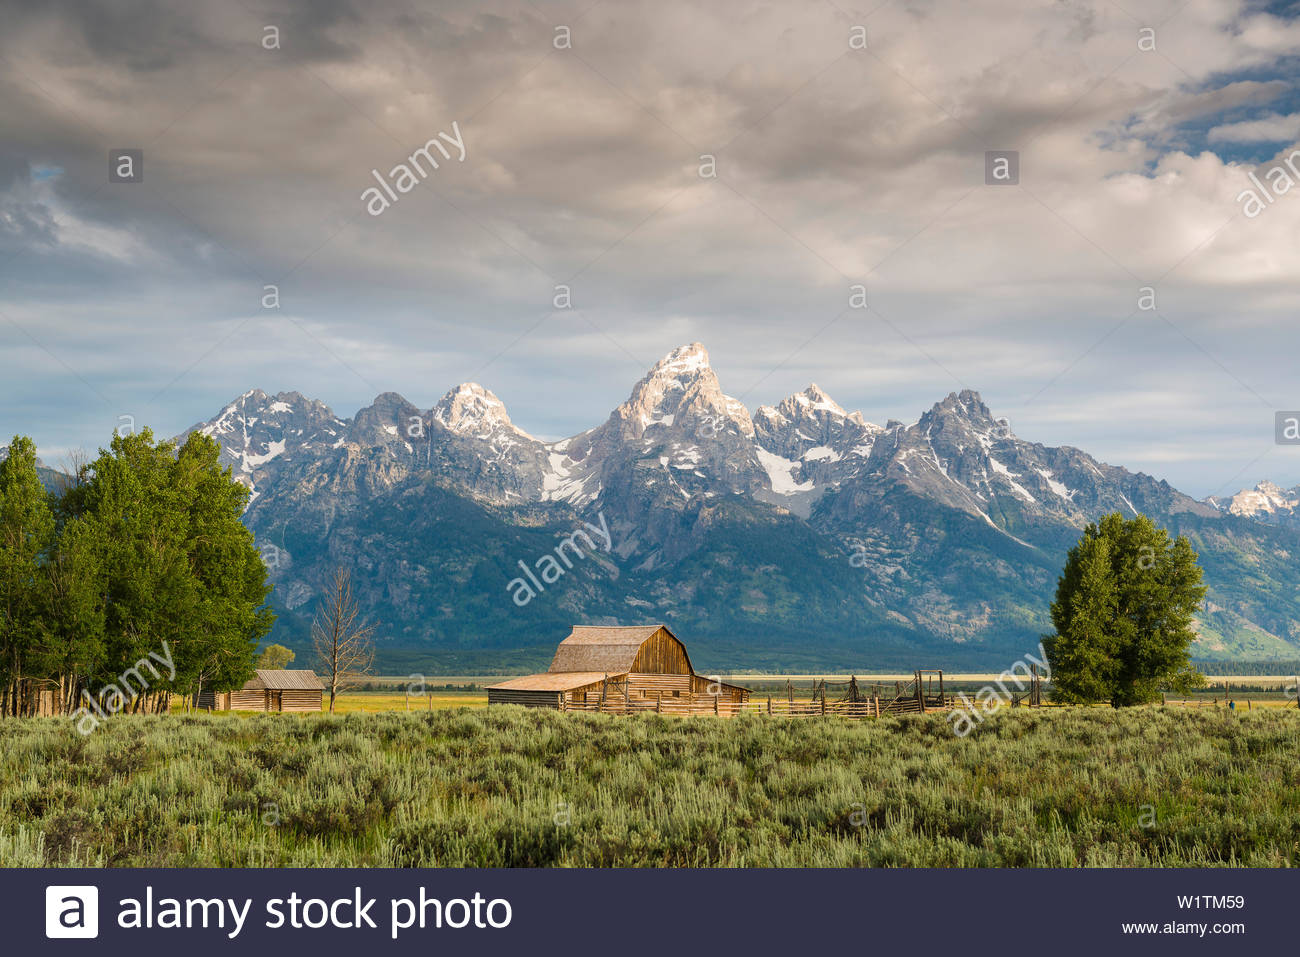 Mormon Row barn with the Tetons in the background Grand Teton 1300x957